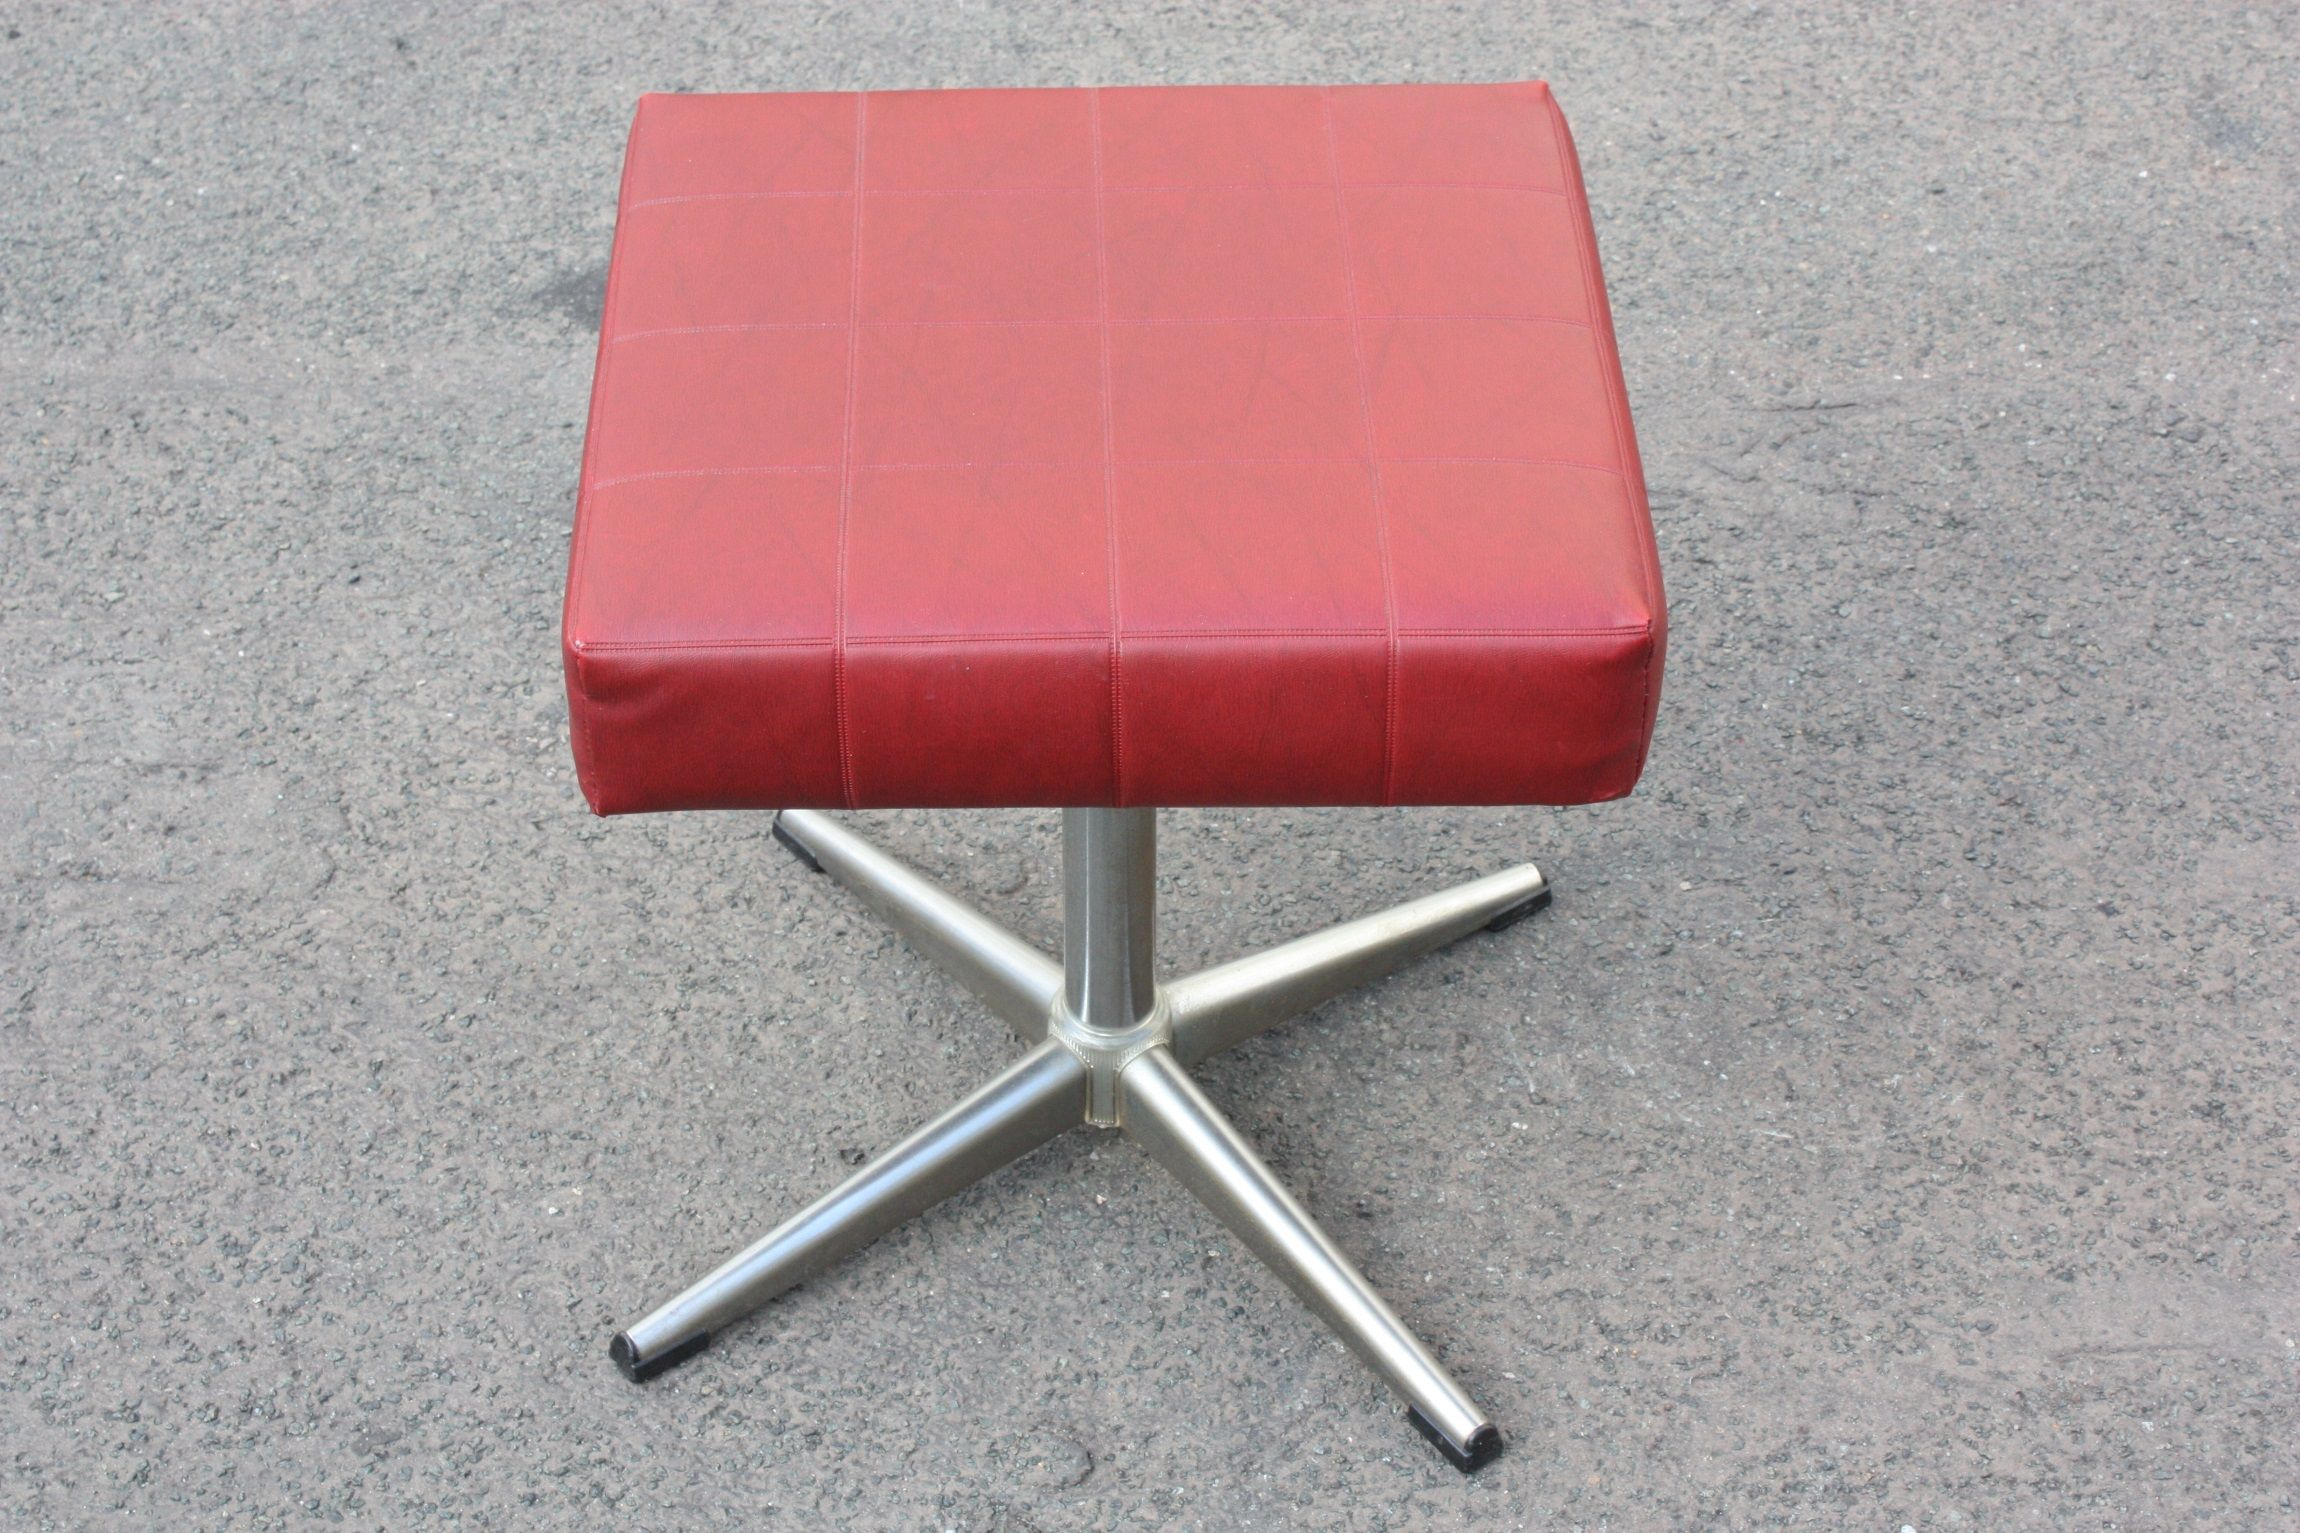 Hocker Vintage 70s Mit Chromgestell Fusshocker Chrom Mobel Stool Footrest Square In 2020 Hocker Haus Deko Fusshocker